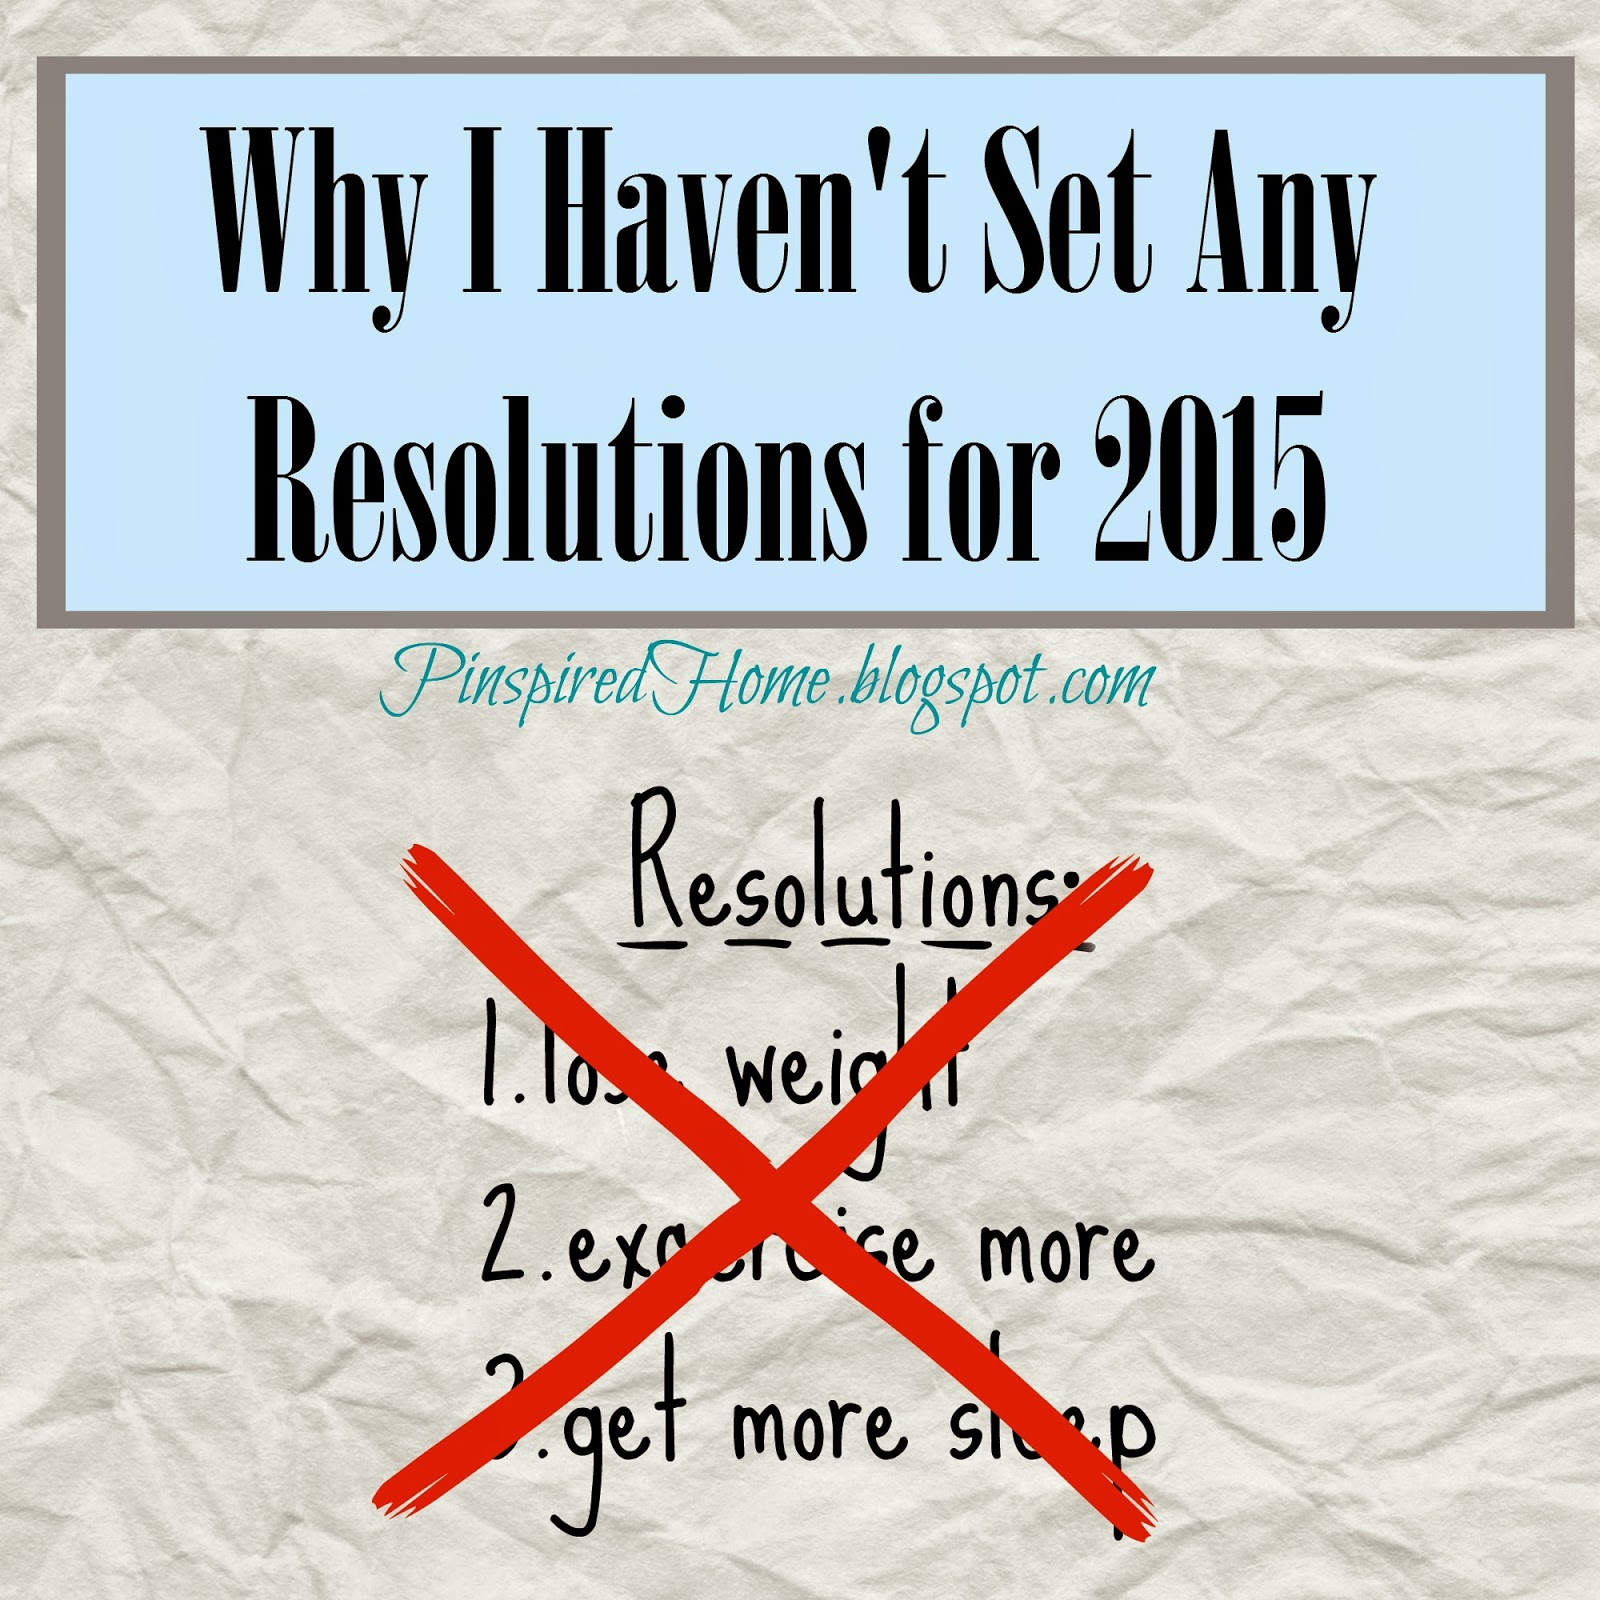 http://pinspiredhome.blogspot.com/2015/01/why-i-havent-set-resolutions-for-2015.html